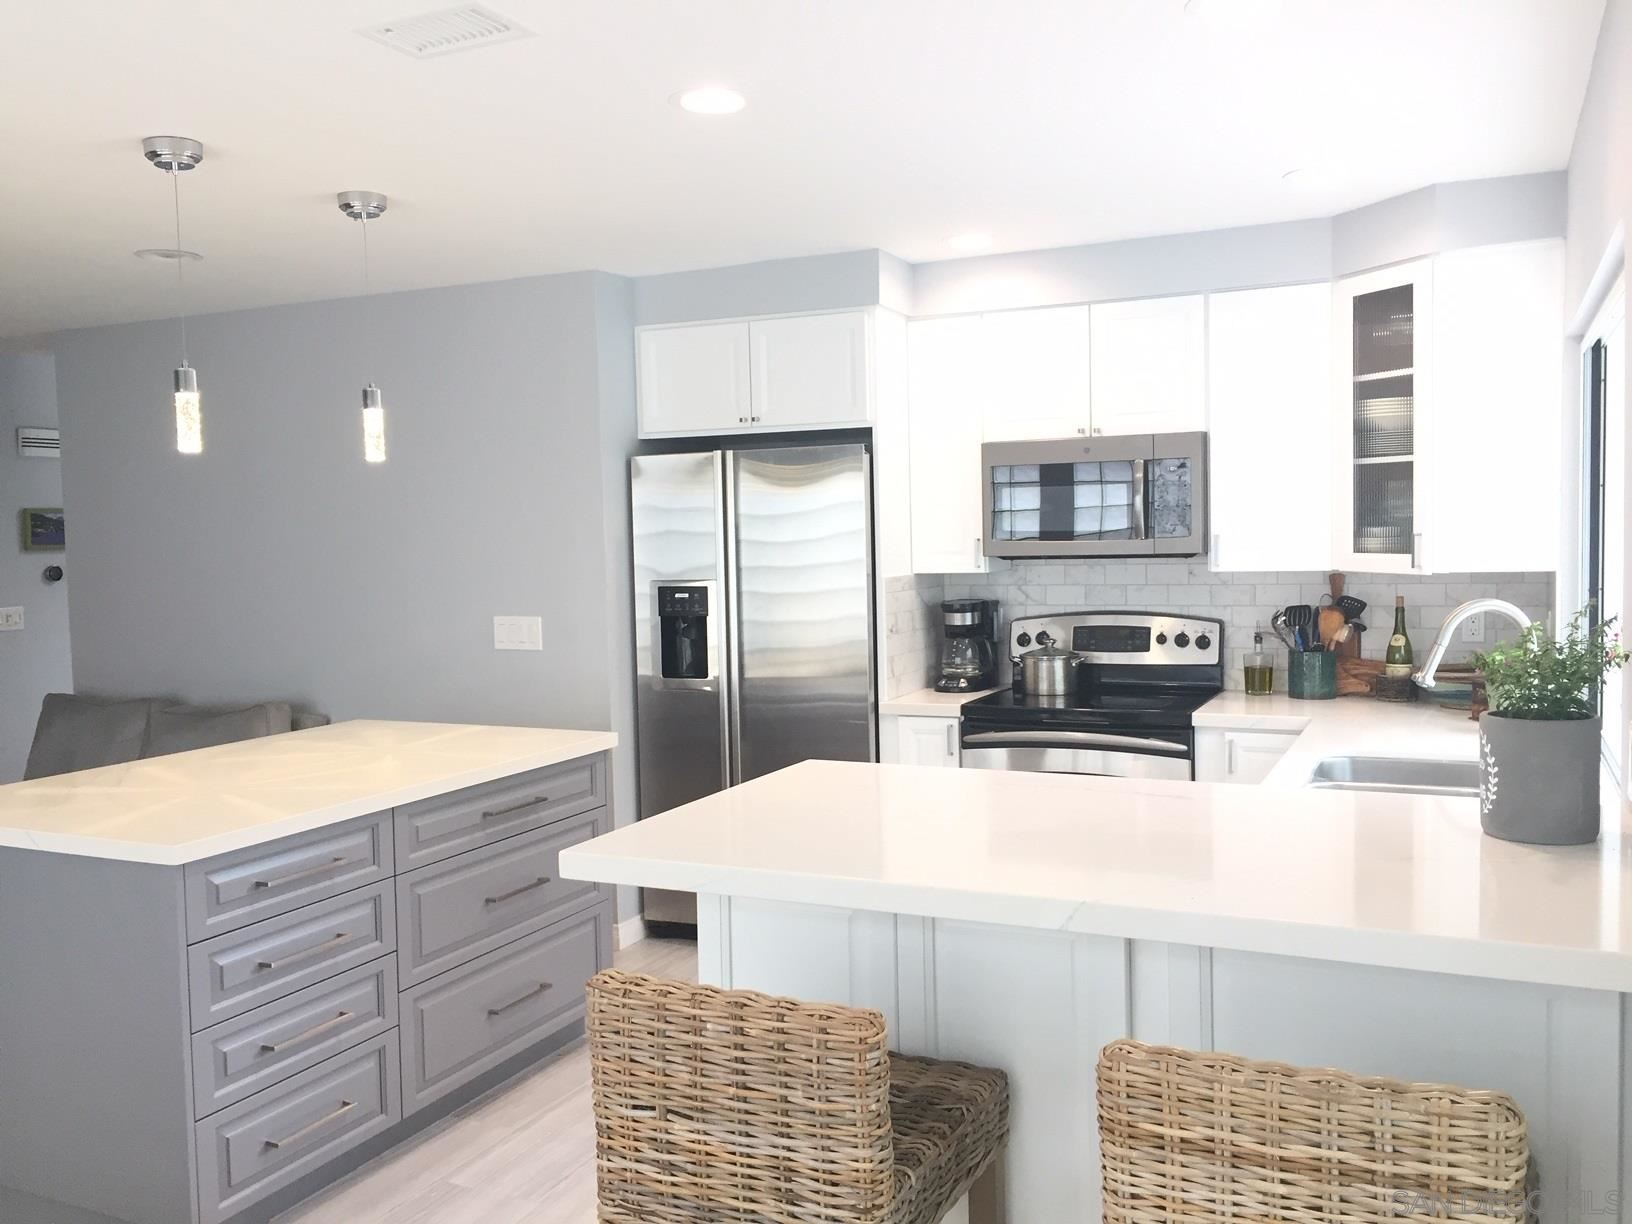 Photo of 13378 MANGO, DEL MAR, CA 92014 (MLS # 210008979)